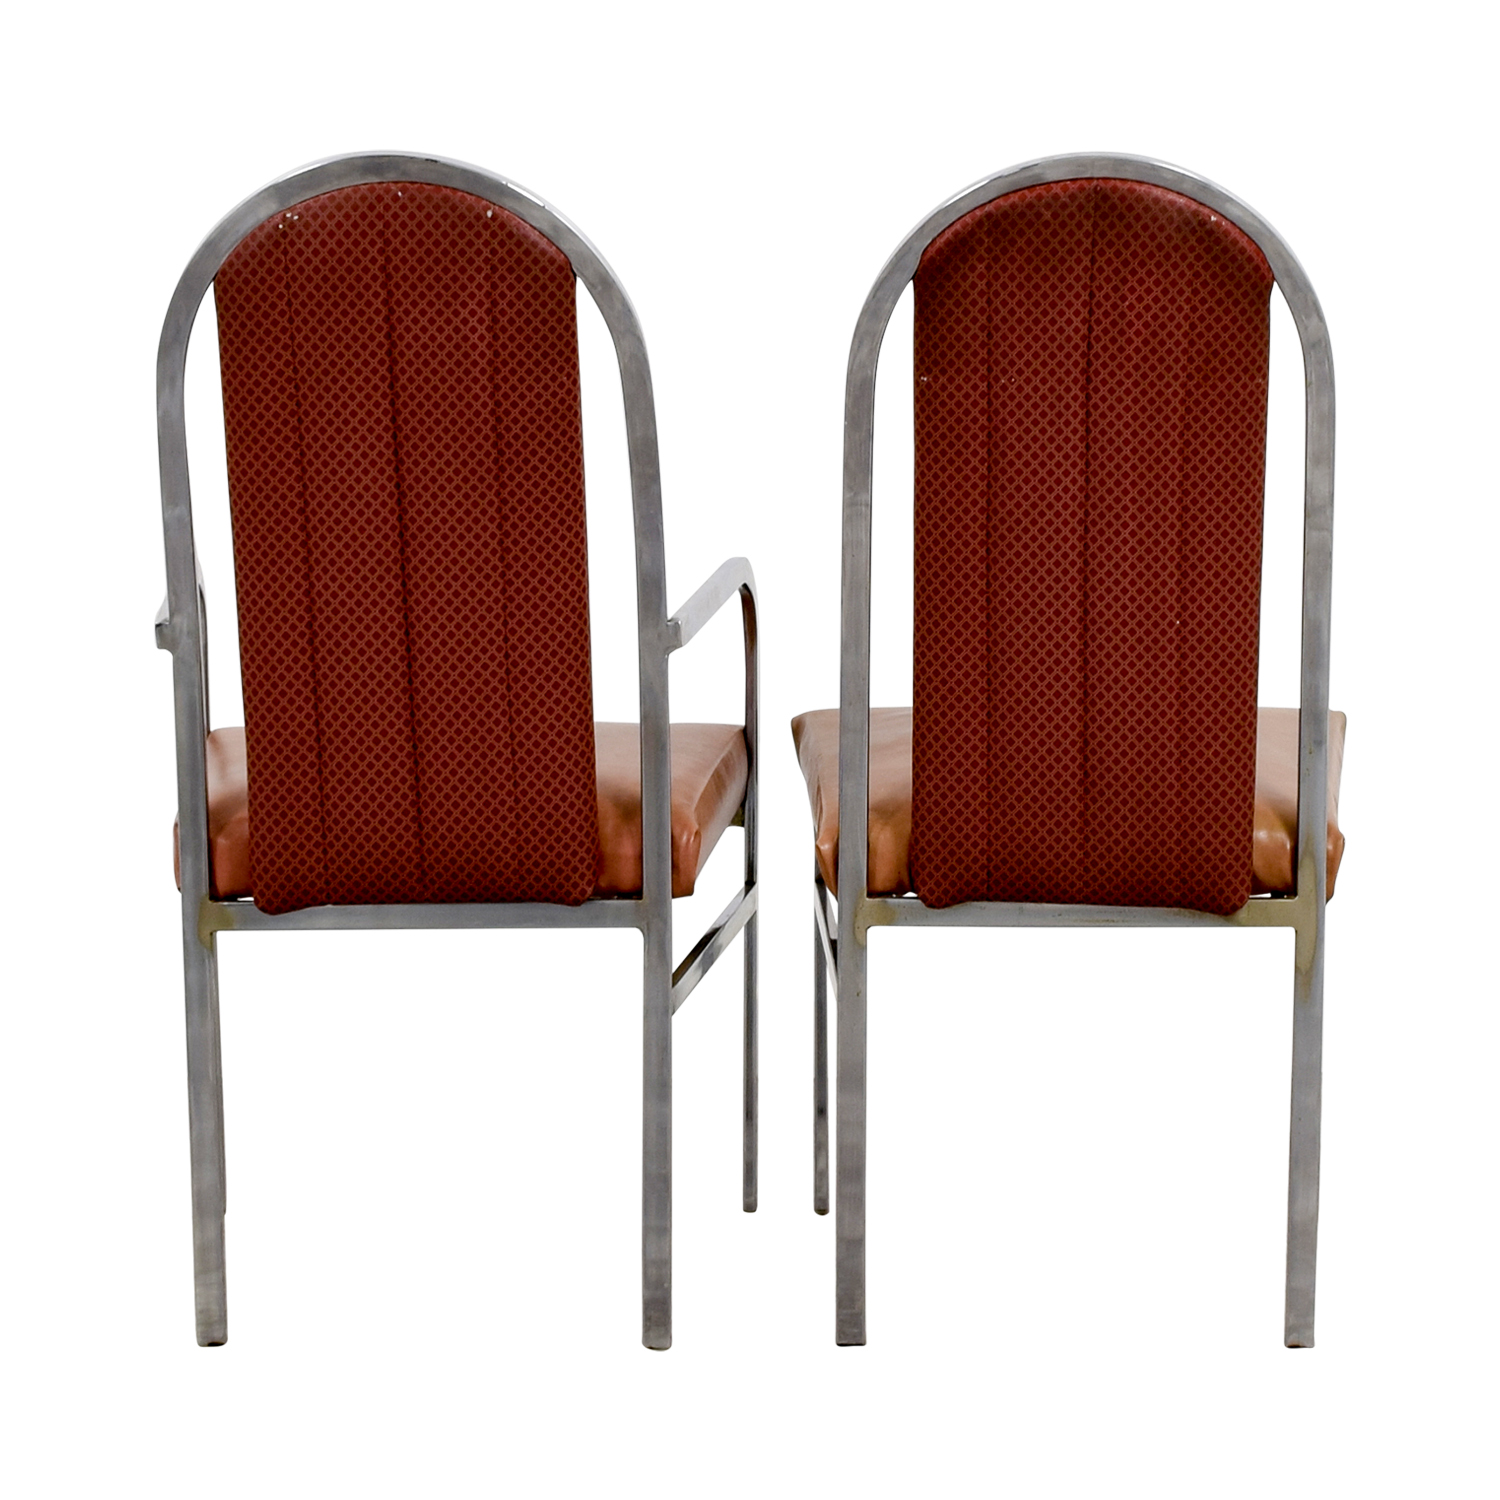 Peach Leather and Chrome Dining Chairs on sale